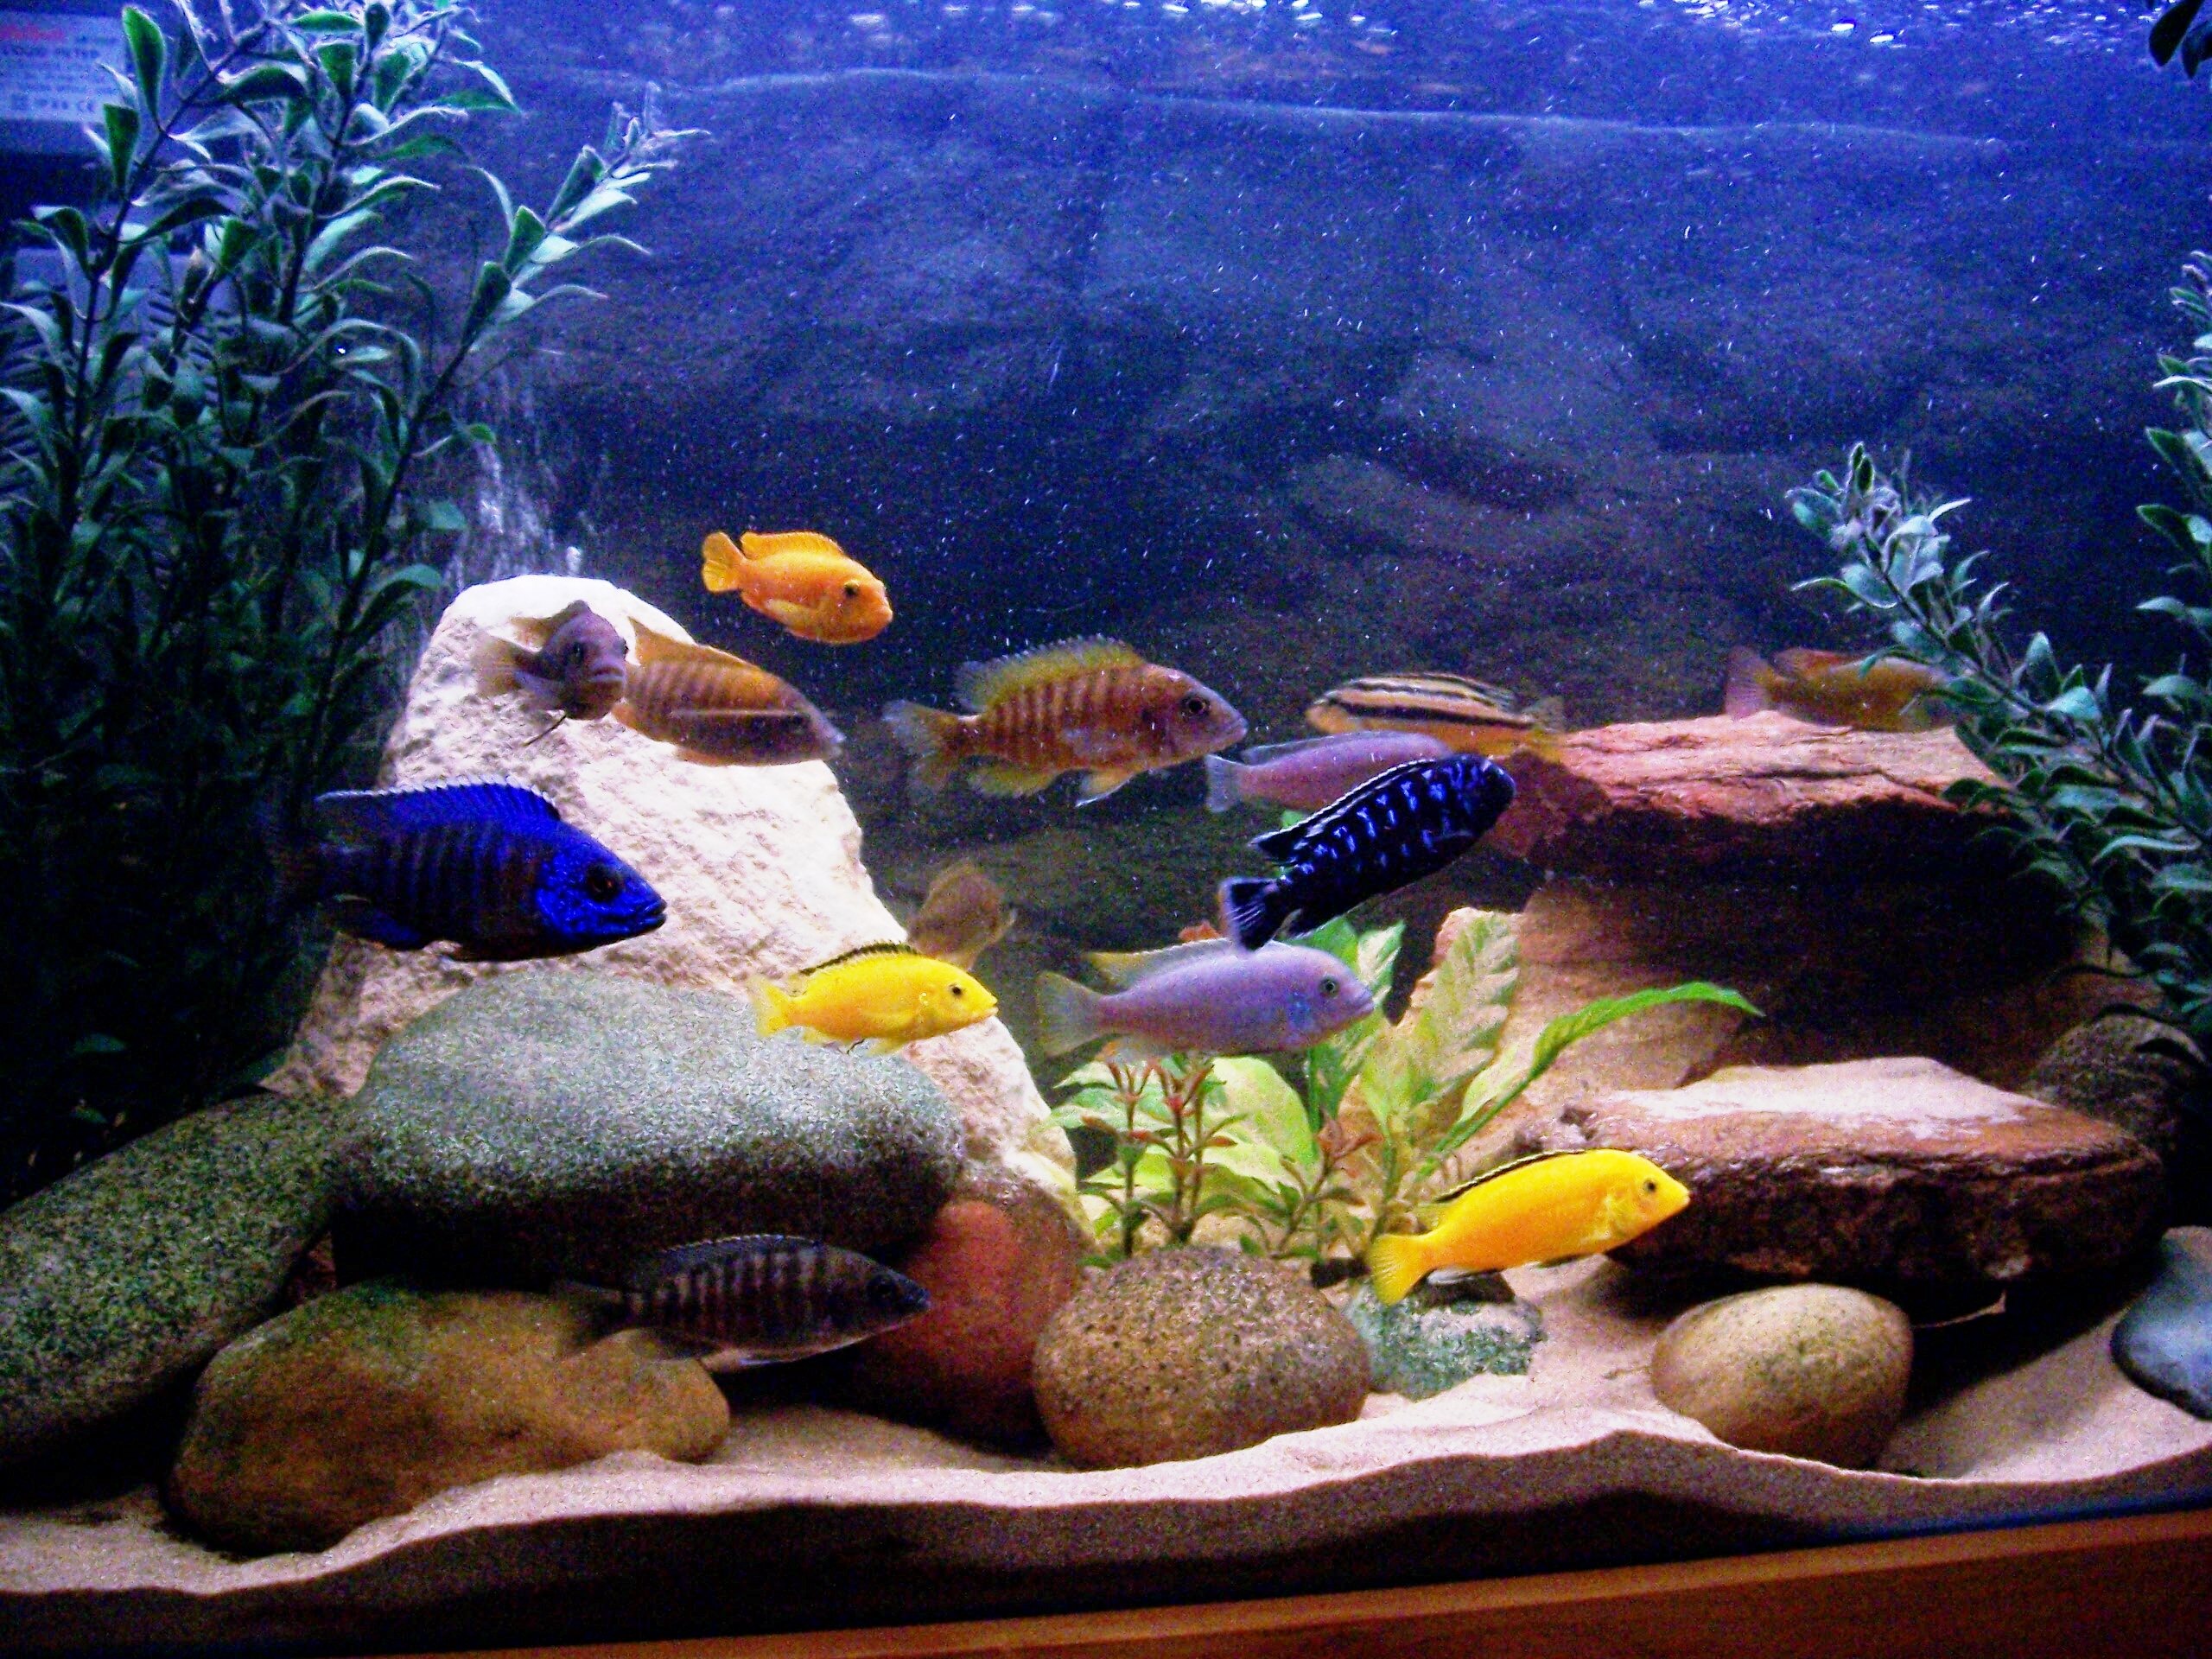 Luke 39 s cichlid tank for 10 fish in a tank riddle